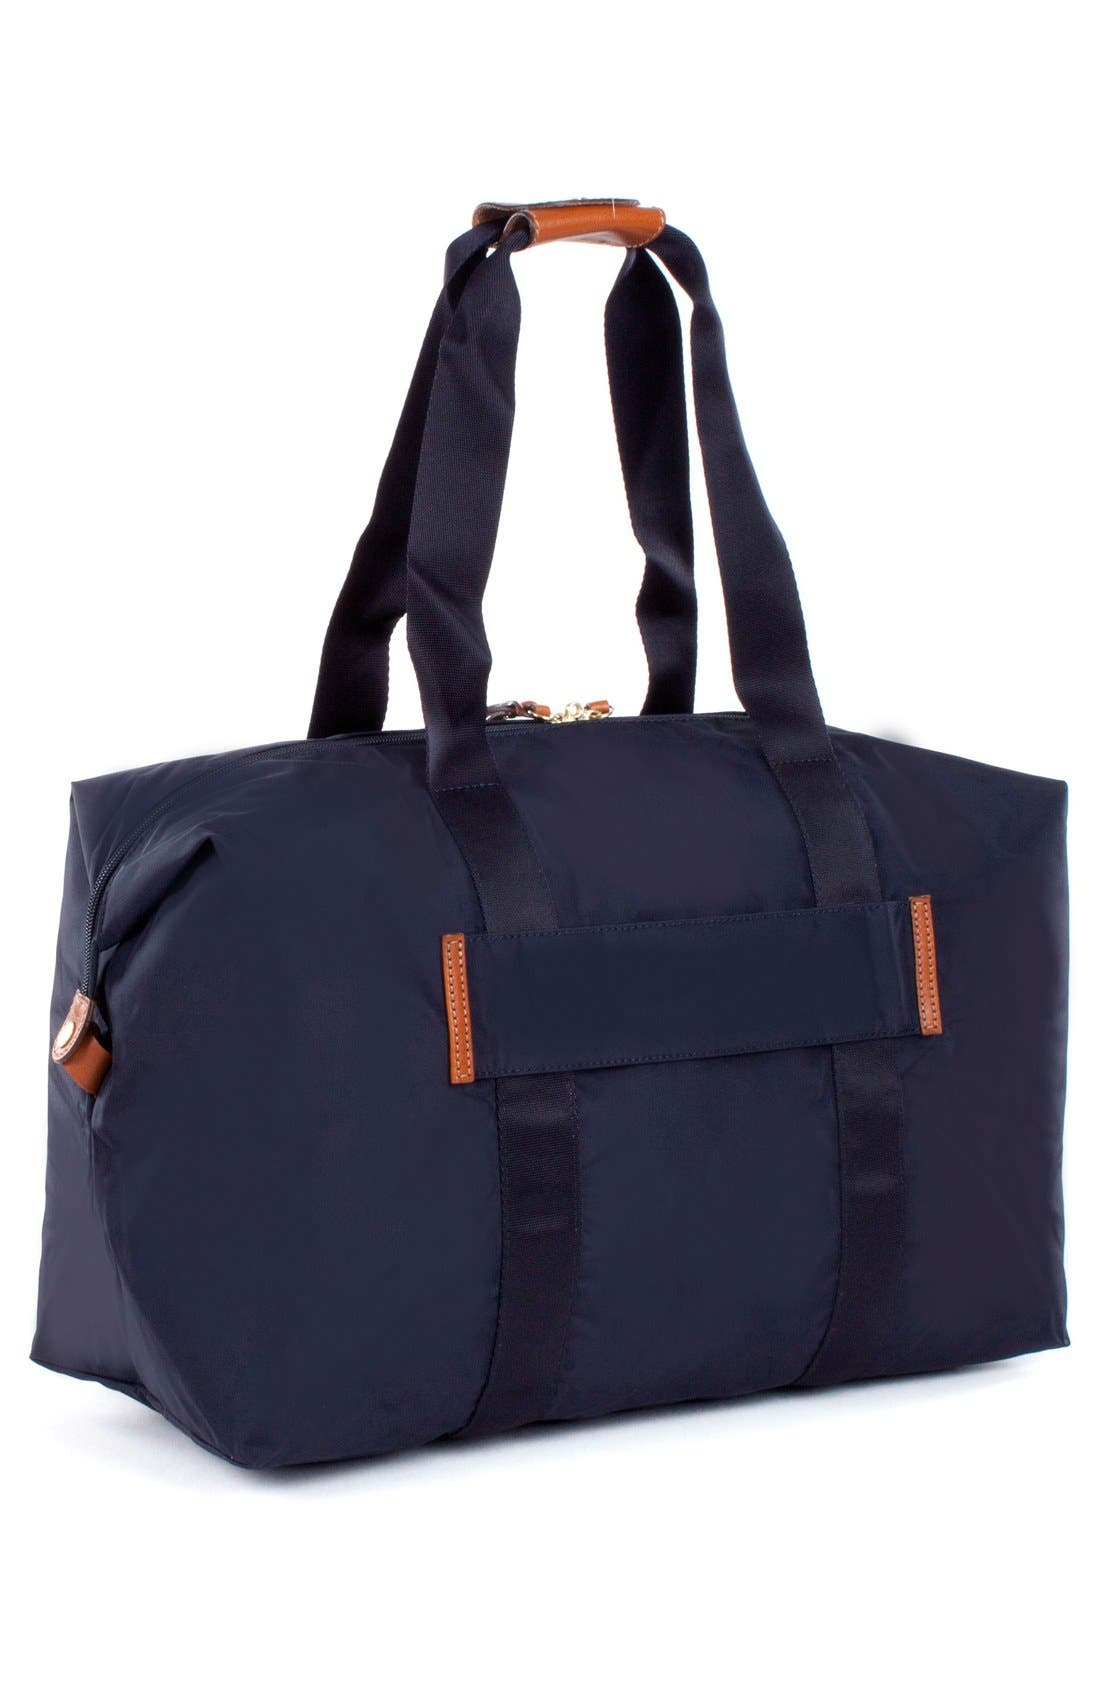 'X-Bag' Folding Duffel Bag,                             Alternate thumbnail 3, color,                             Navy